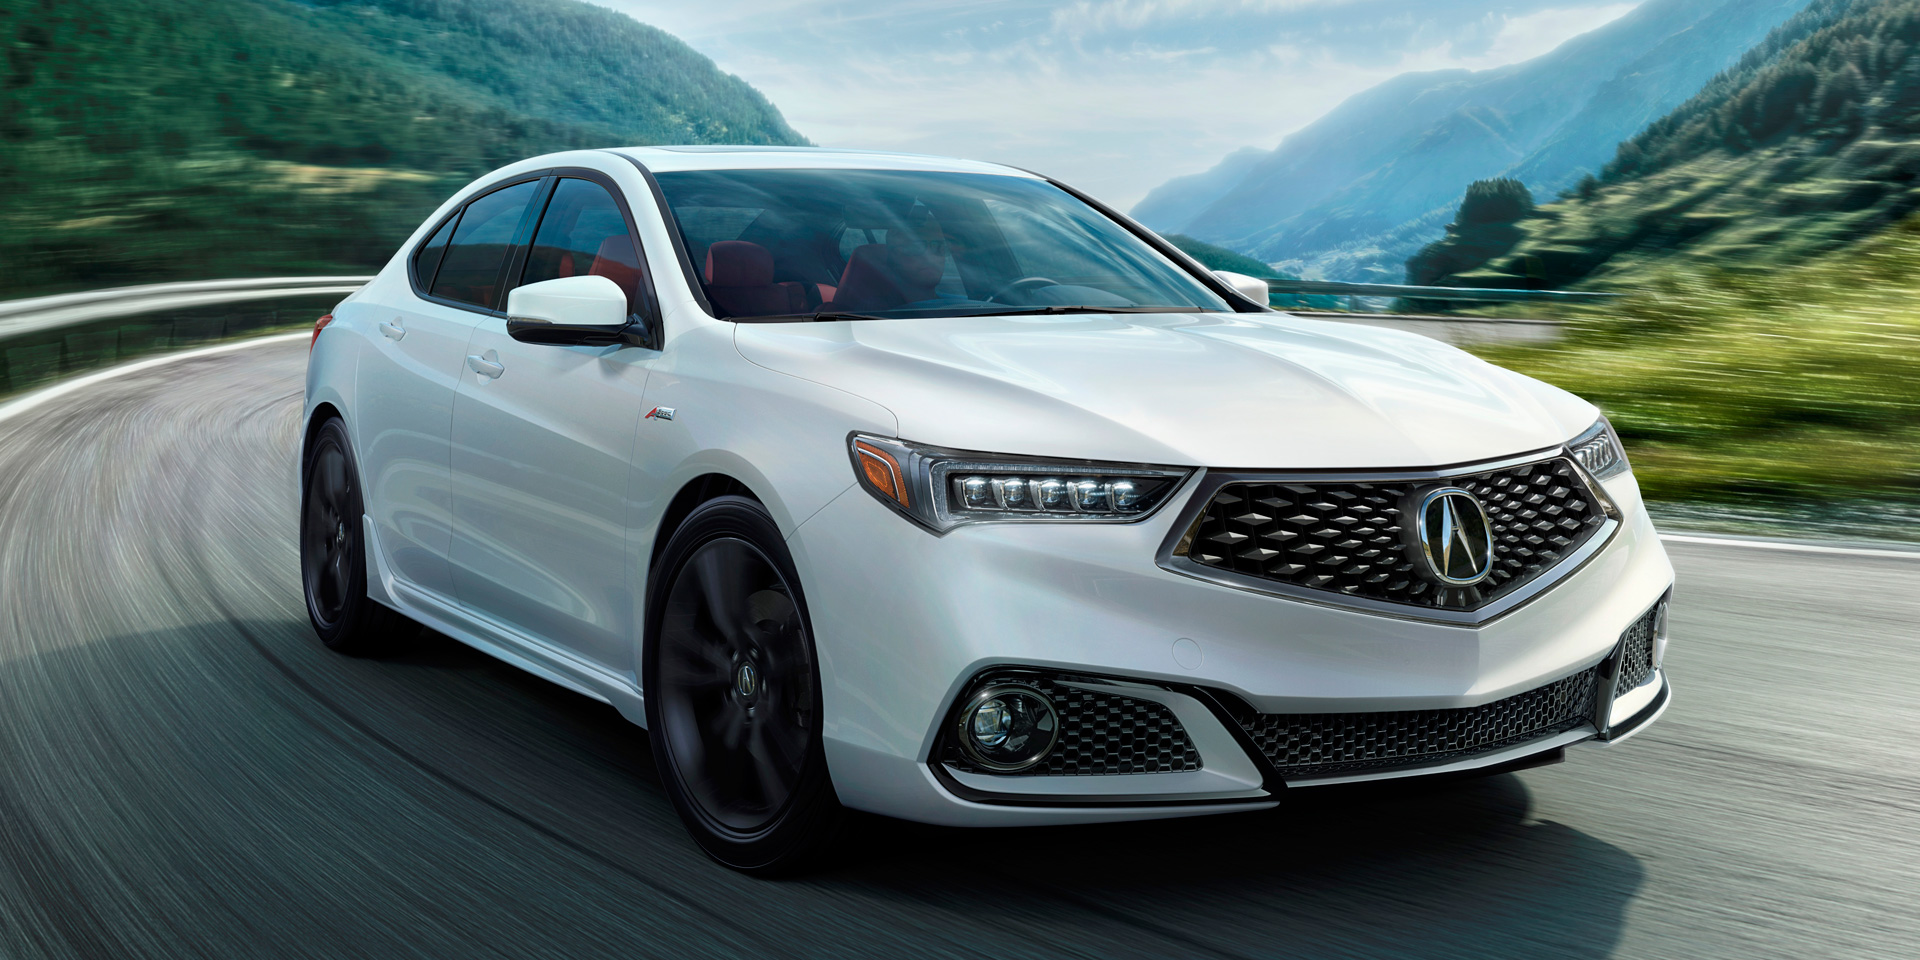 2018 acura tlx vehicles on display chicago auto show. Black Bedroom Furniture Sets. Home Design Ideas